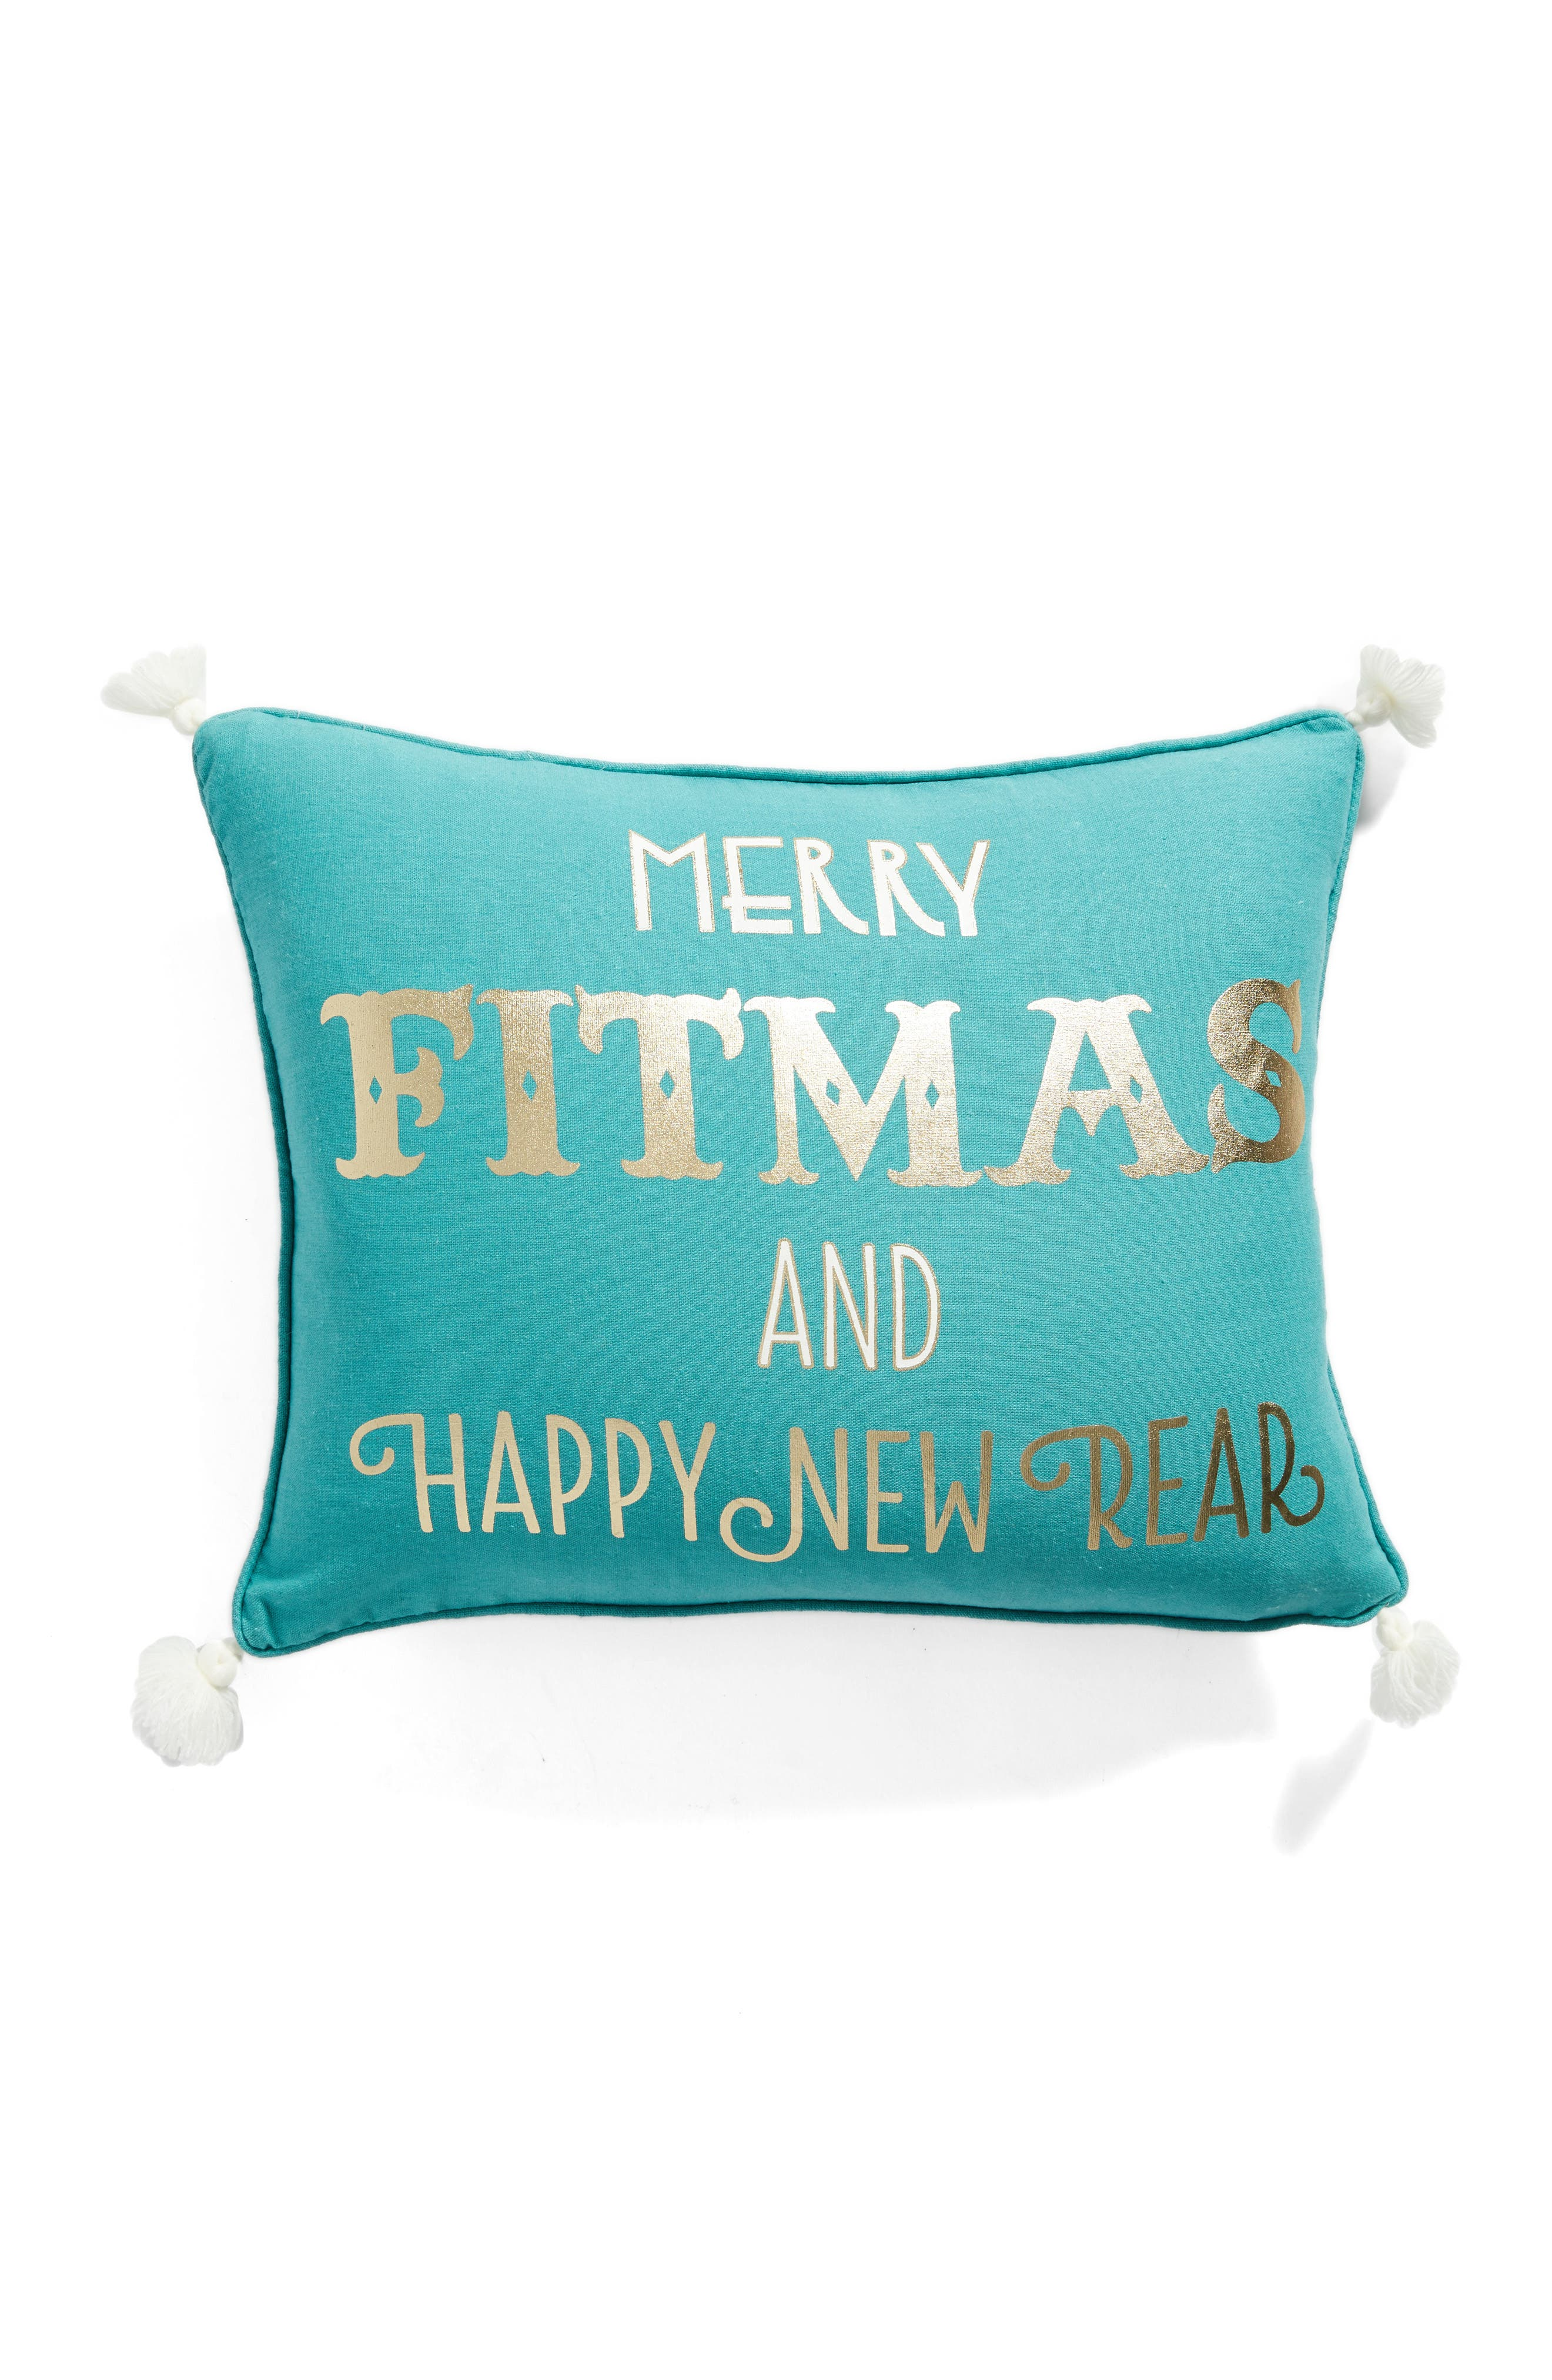 Merry Fitmas Pillow,                         Main,                         color, 400